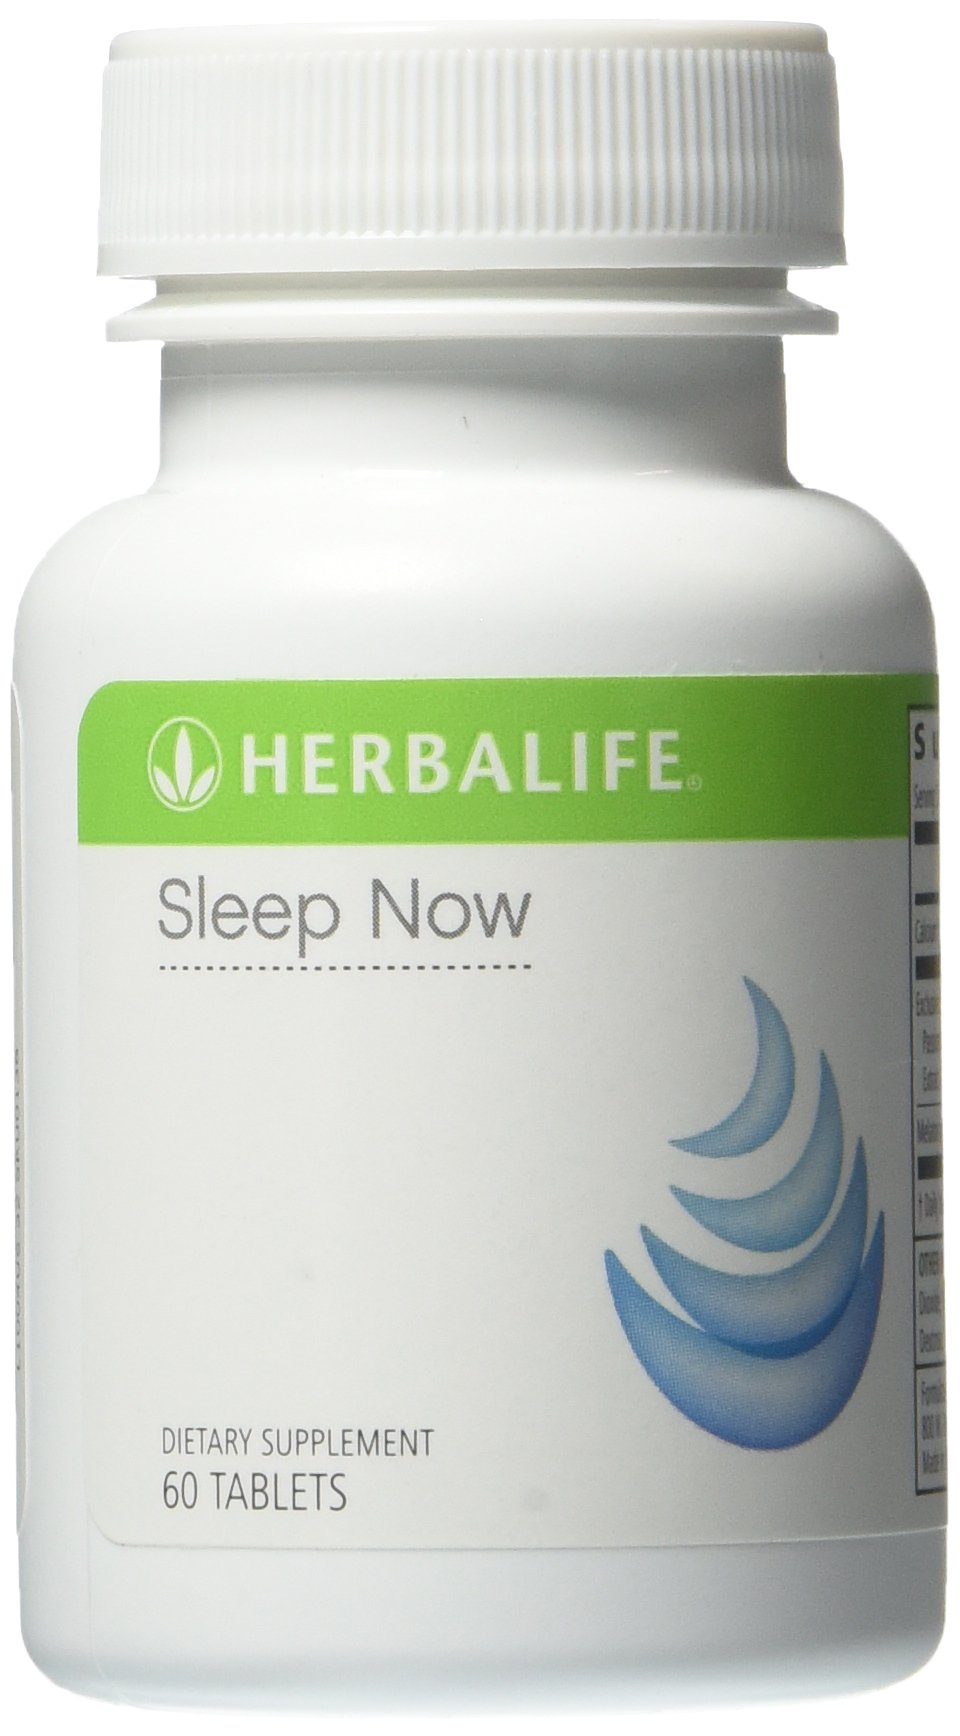 Herbalife Sleep Now